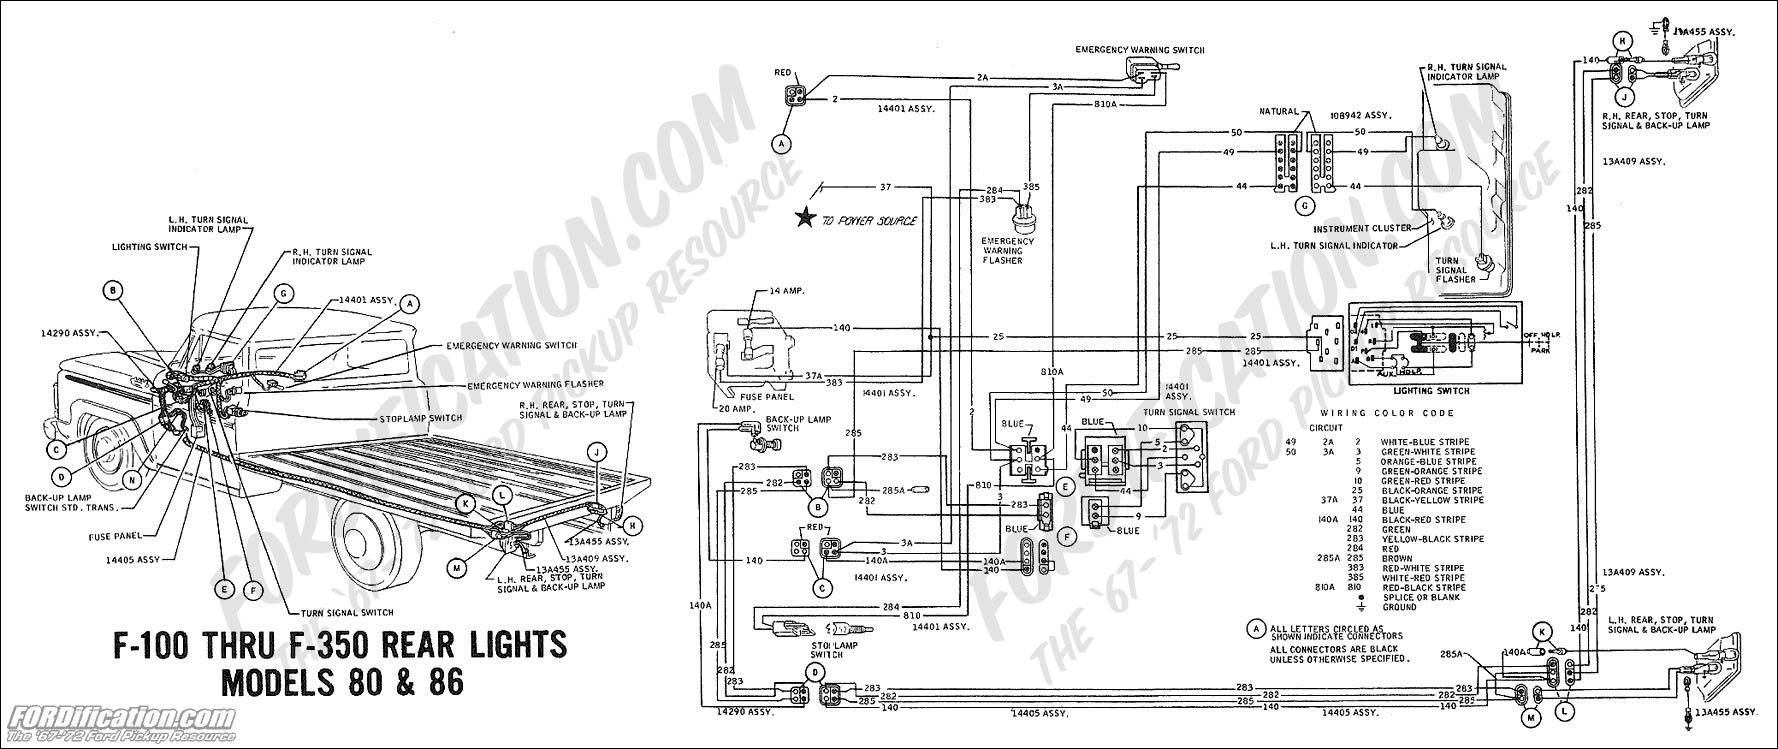 1969 Ford F150 Wiring Diagram Schematics 2010 F 150 Truck Technical Drawings And Section H